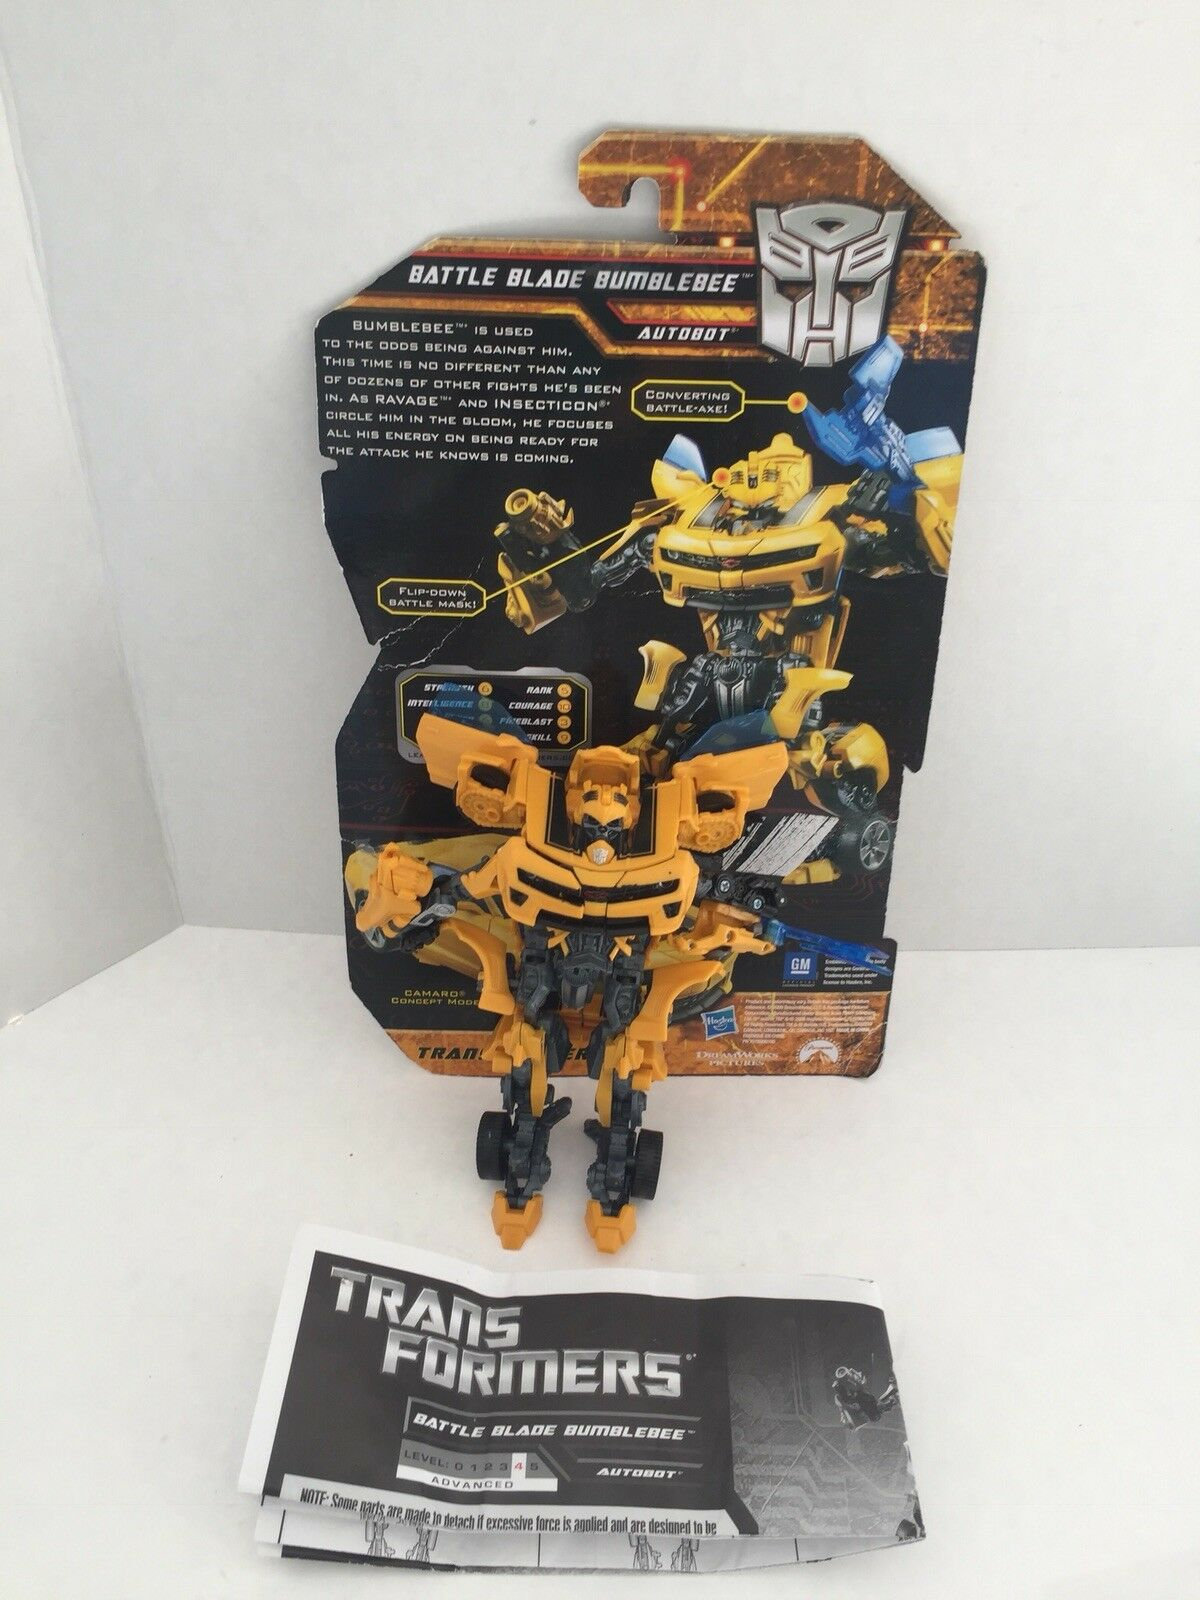 Hasbro TRANSFORMERS Hunt for the Decepticons Battle Blade Bumblebee Deluxe